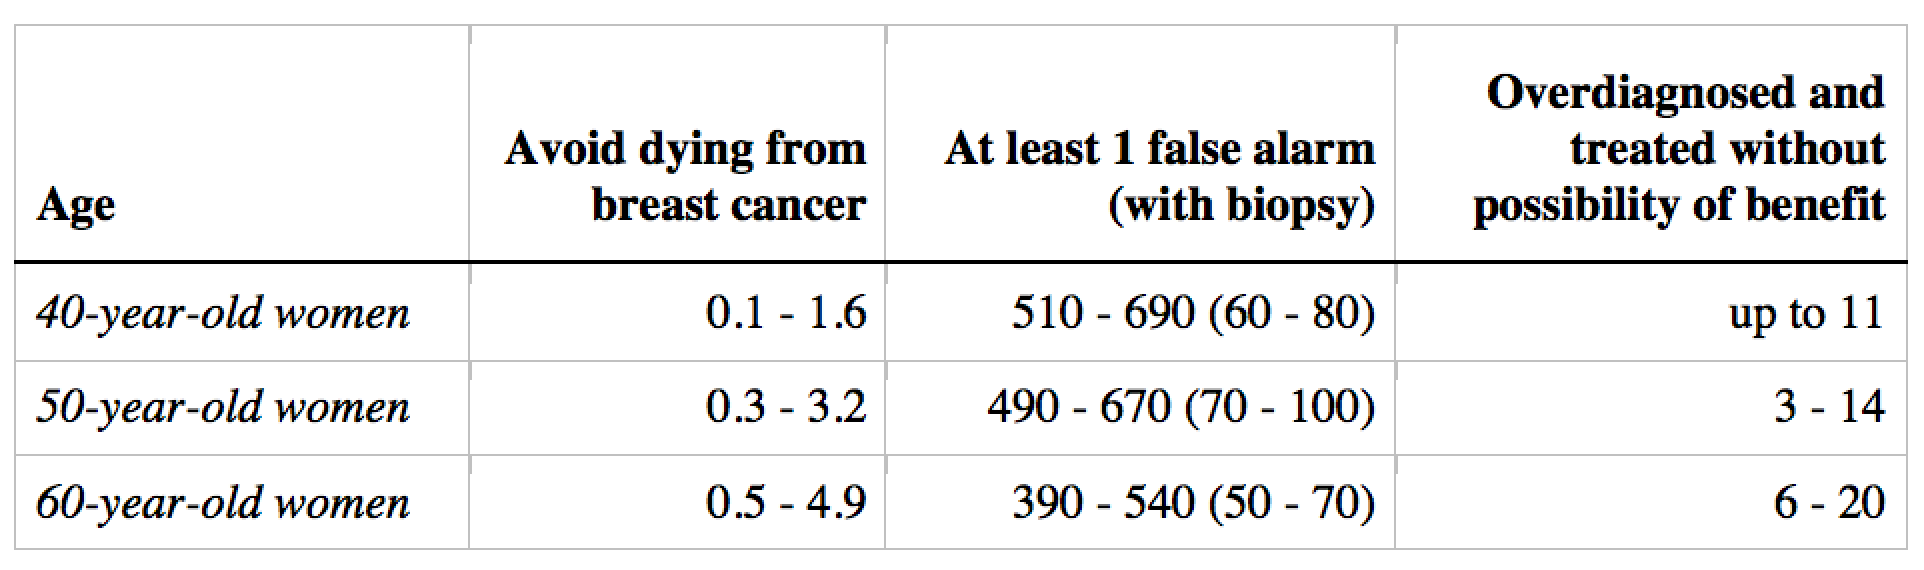 Figure 1: Estimates of harms and benefits of screening mammography